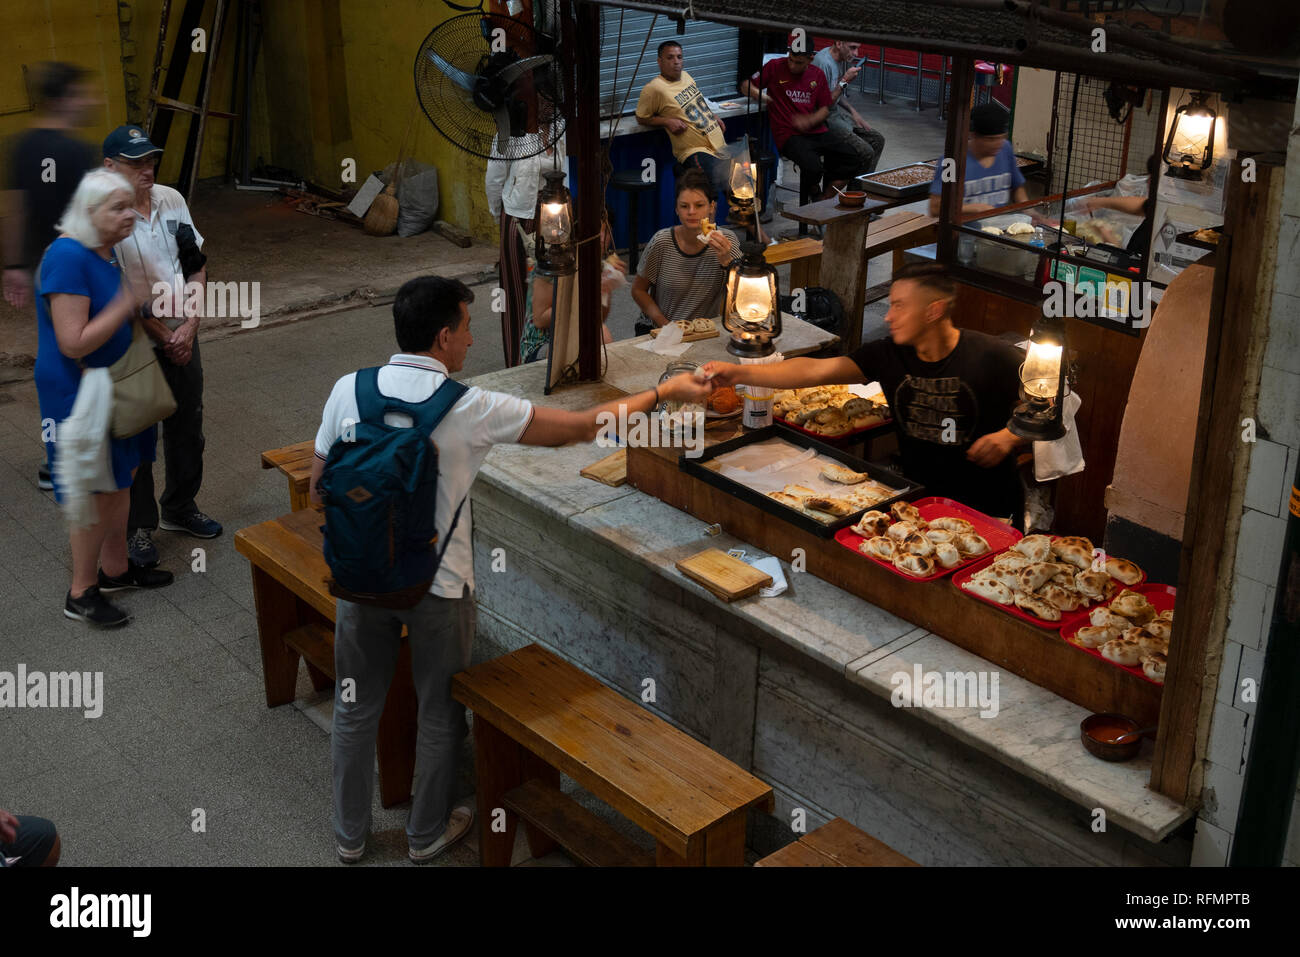 San Telmo Market, large indoor market located in the ancien San Telmo neighborhood of the city of Buenos Aires, Argentina. - Stock Image